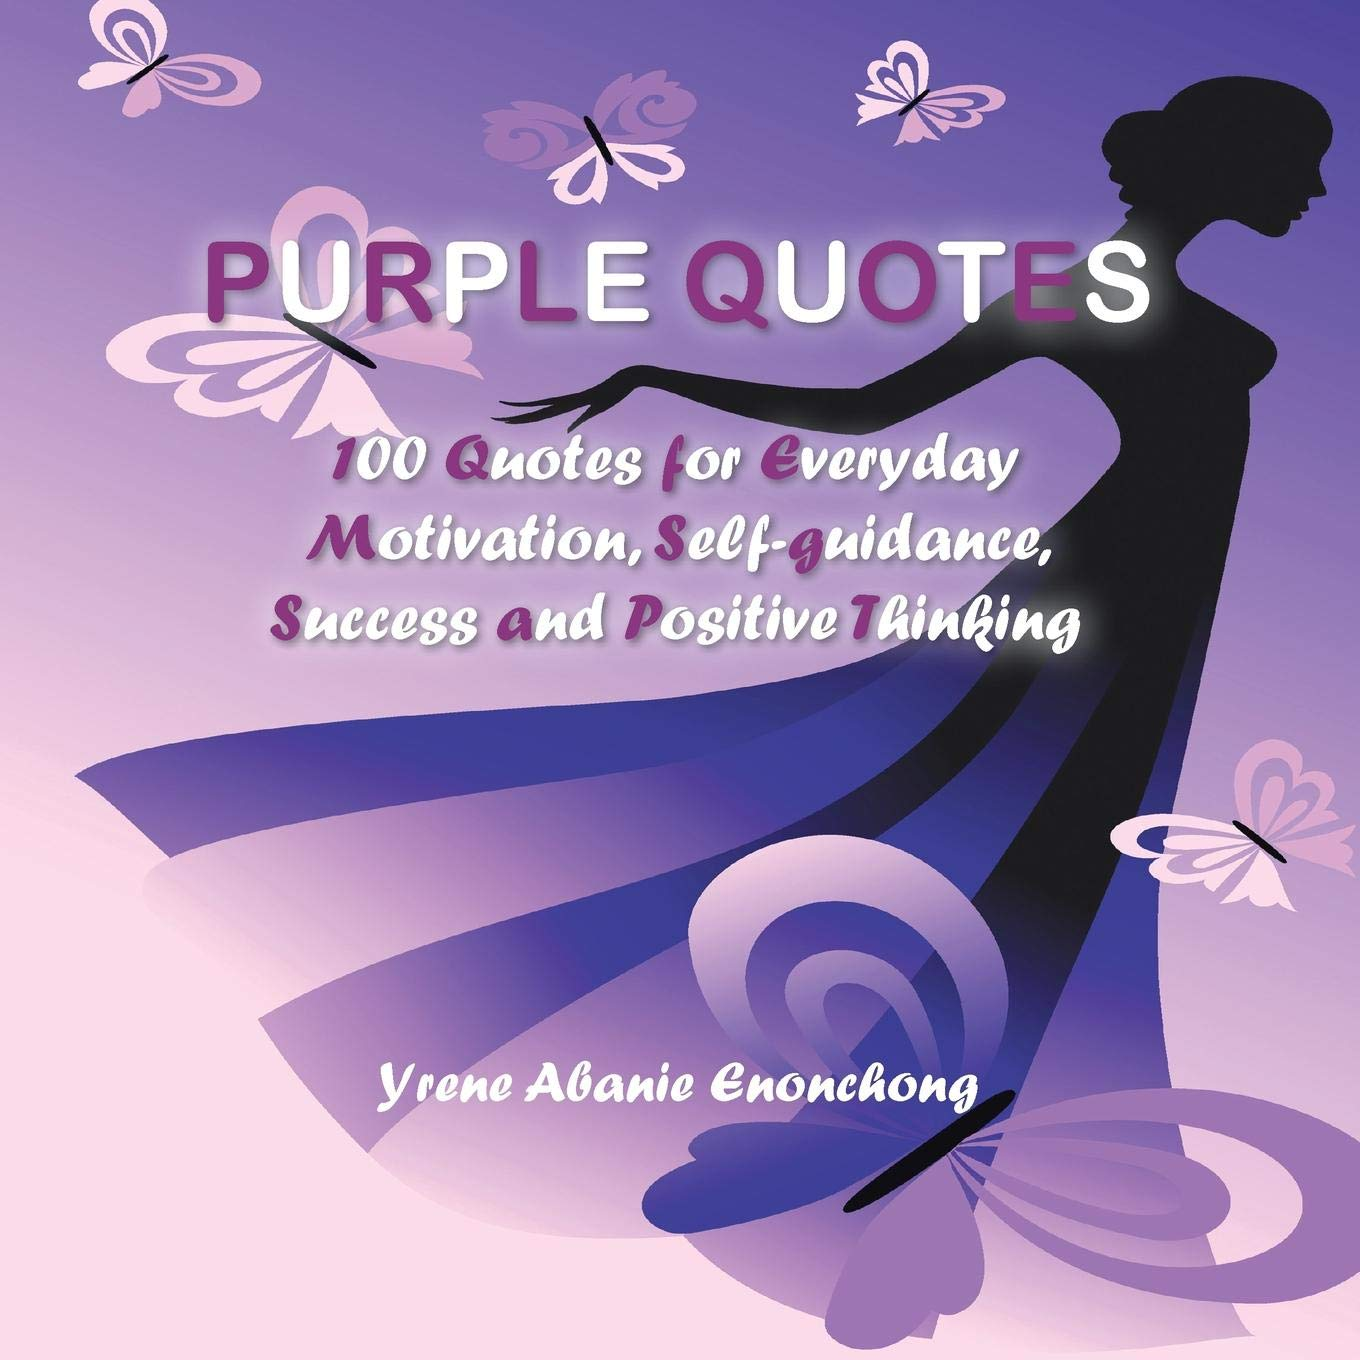 Purple Quotes: 100 Quotes for Everyday Motivation, Self ...